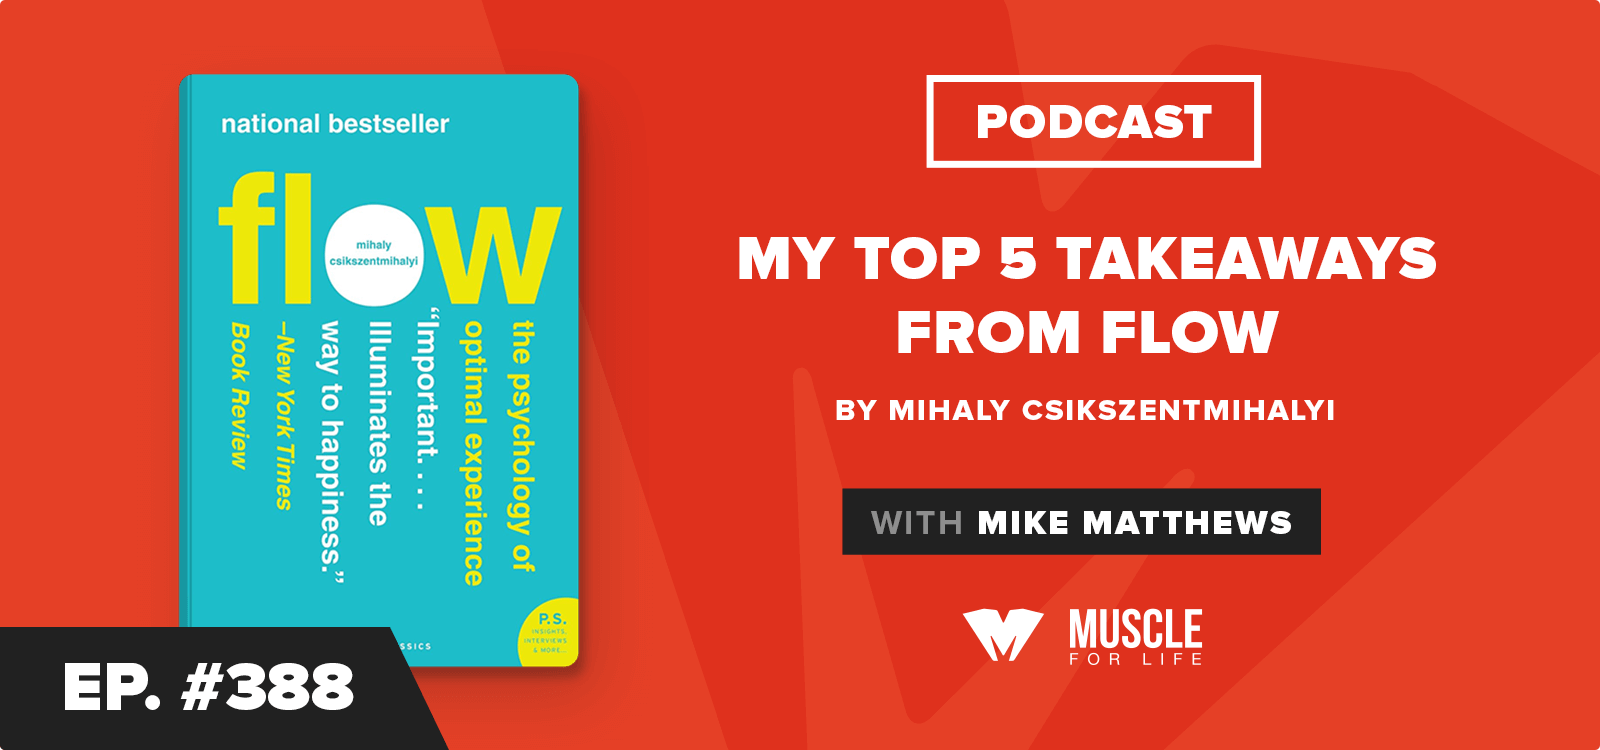 Book Club Podcast: My Top 5 Takeaways from Flow by Mihaly Csikszentmihalyi